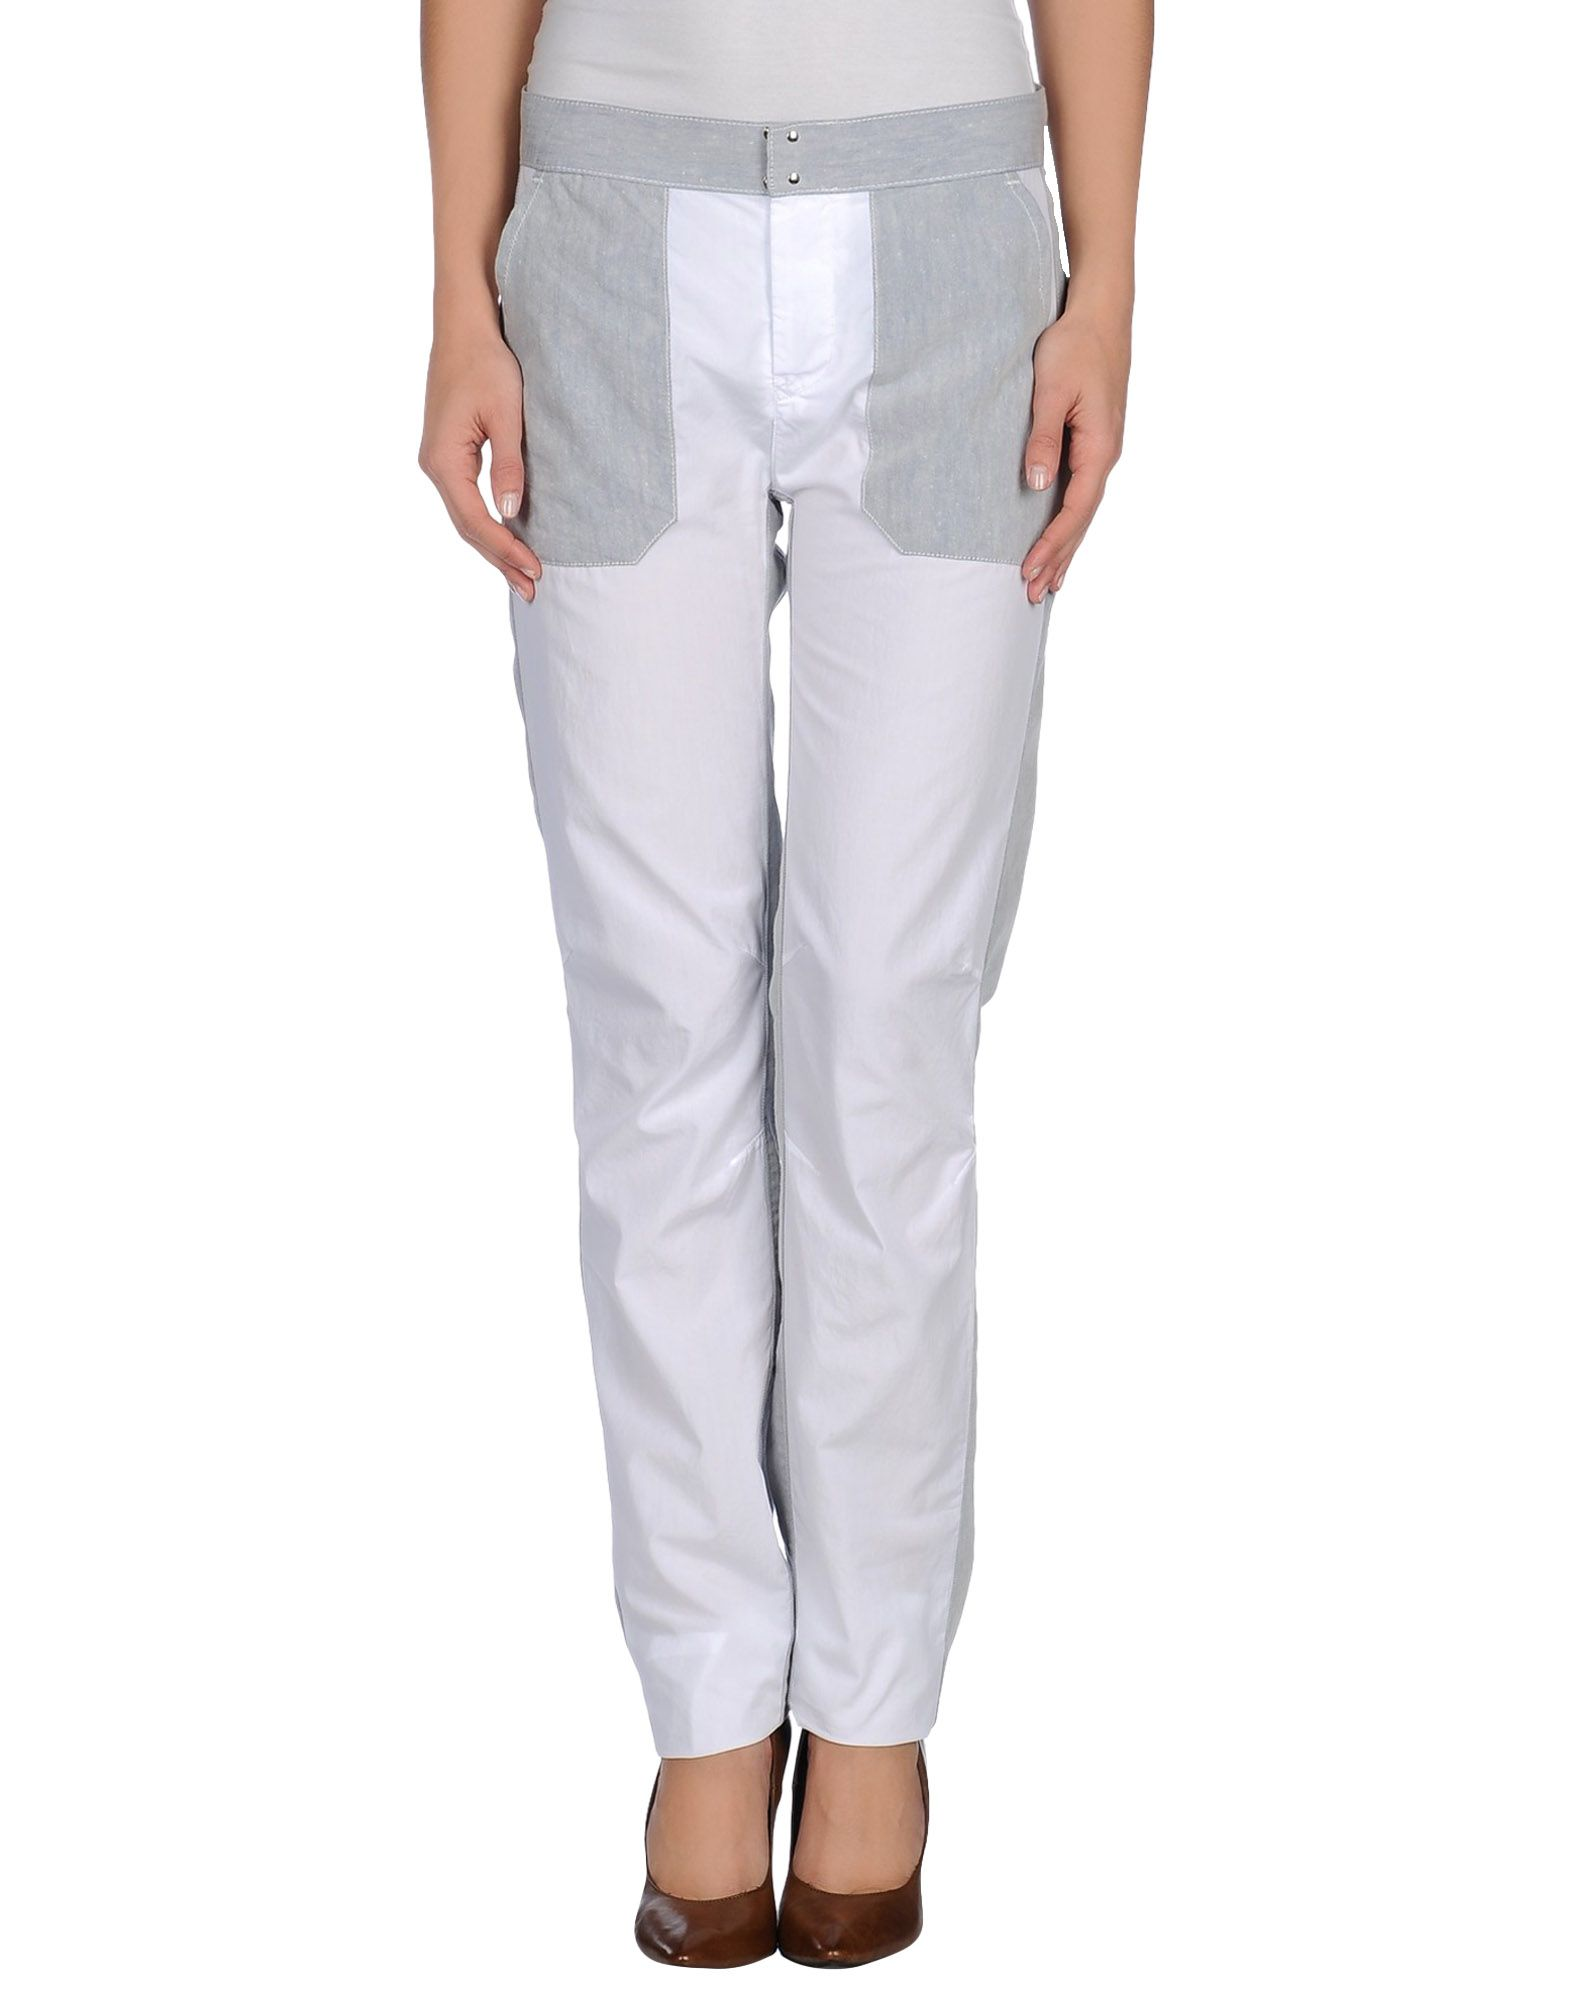 Mm6 by maison martin margiela casual trouser in white lyst for 10 moulmein rise la maison